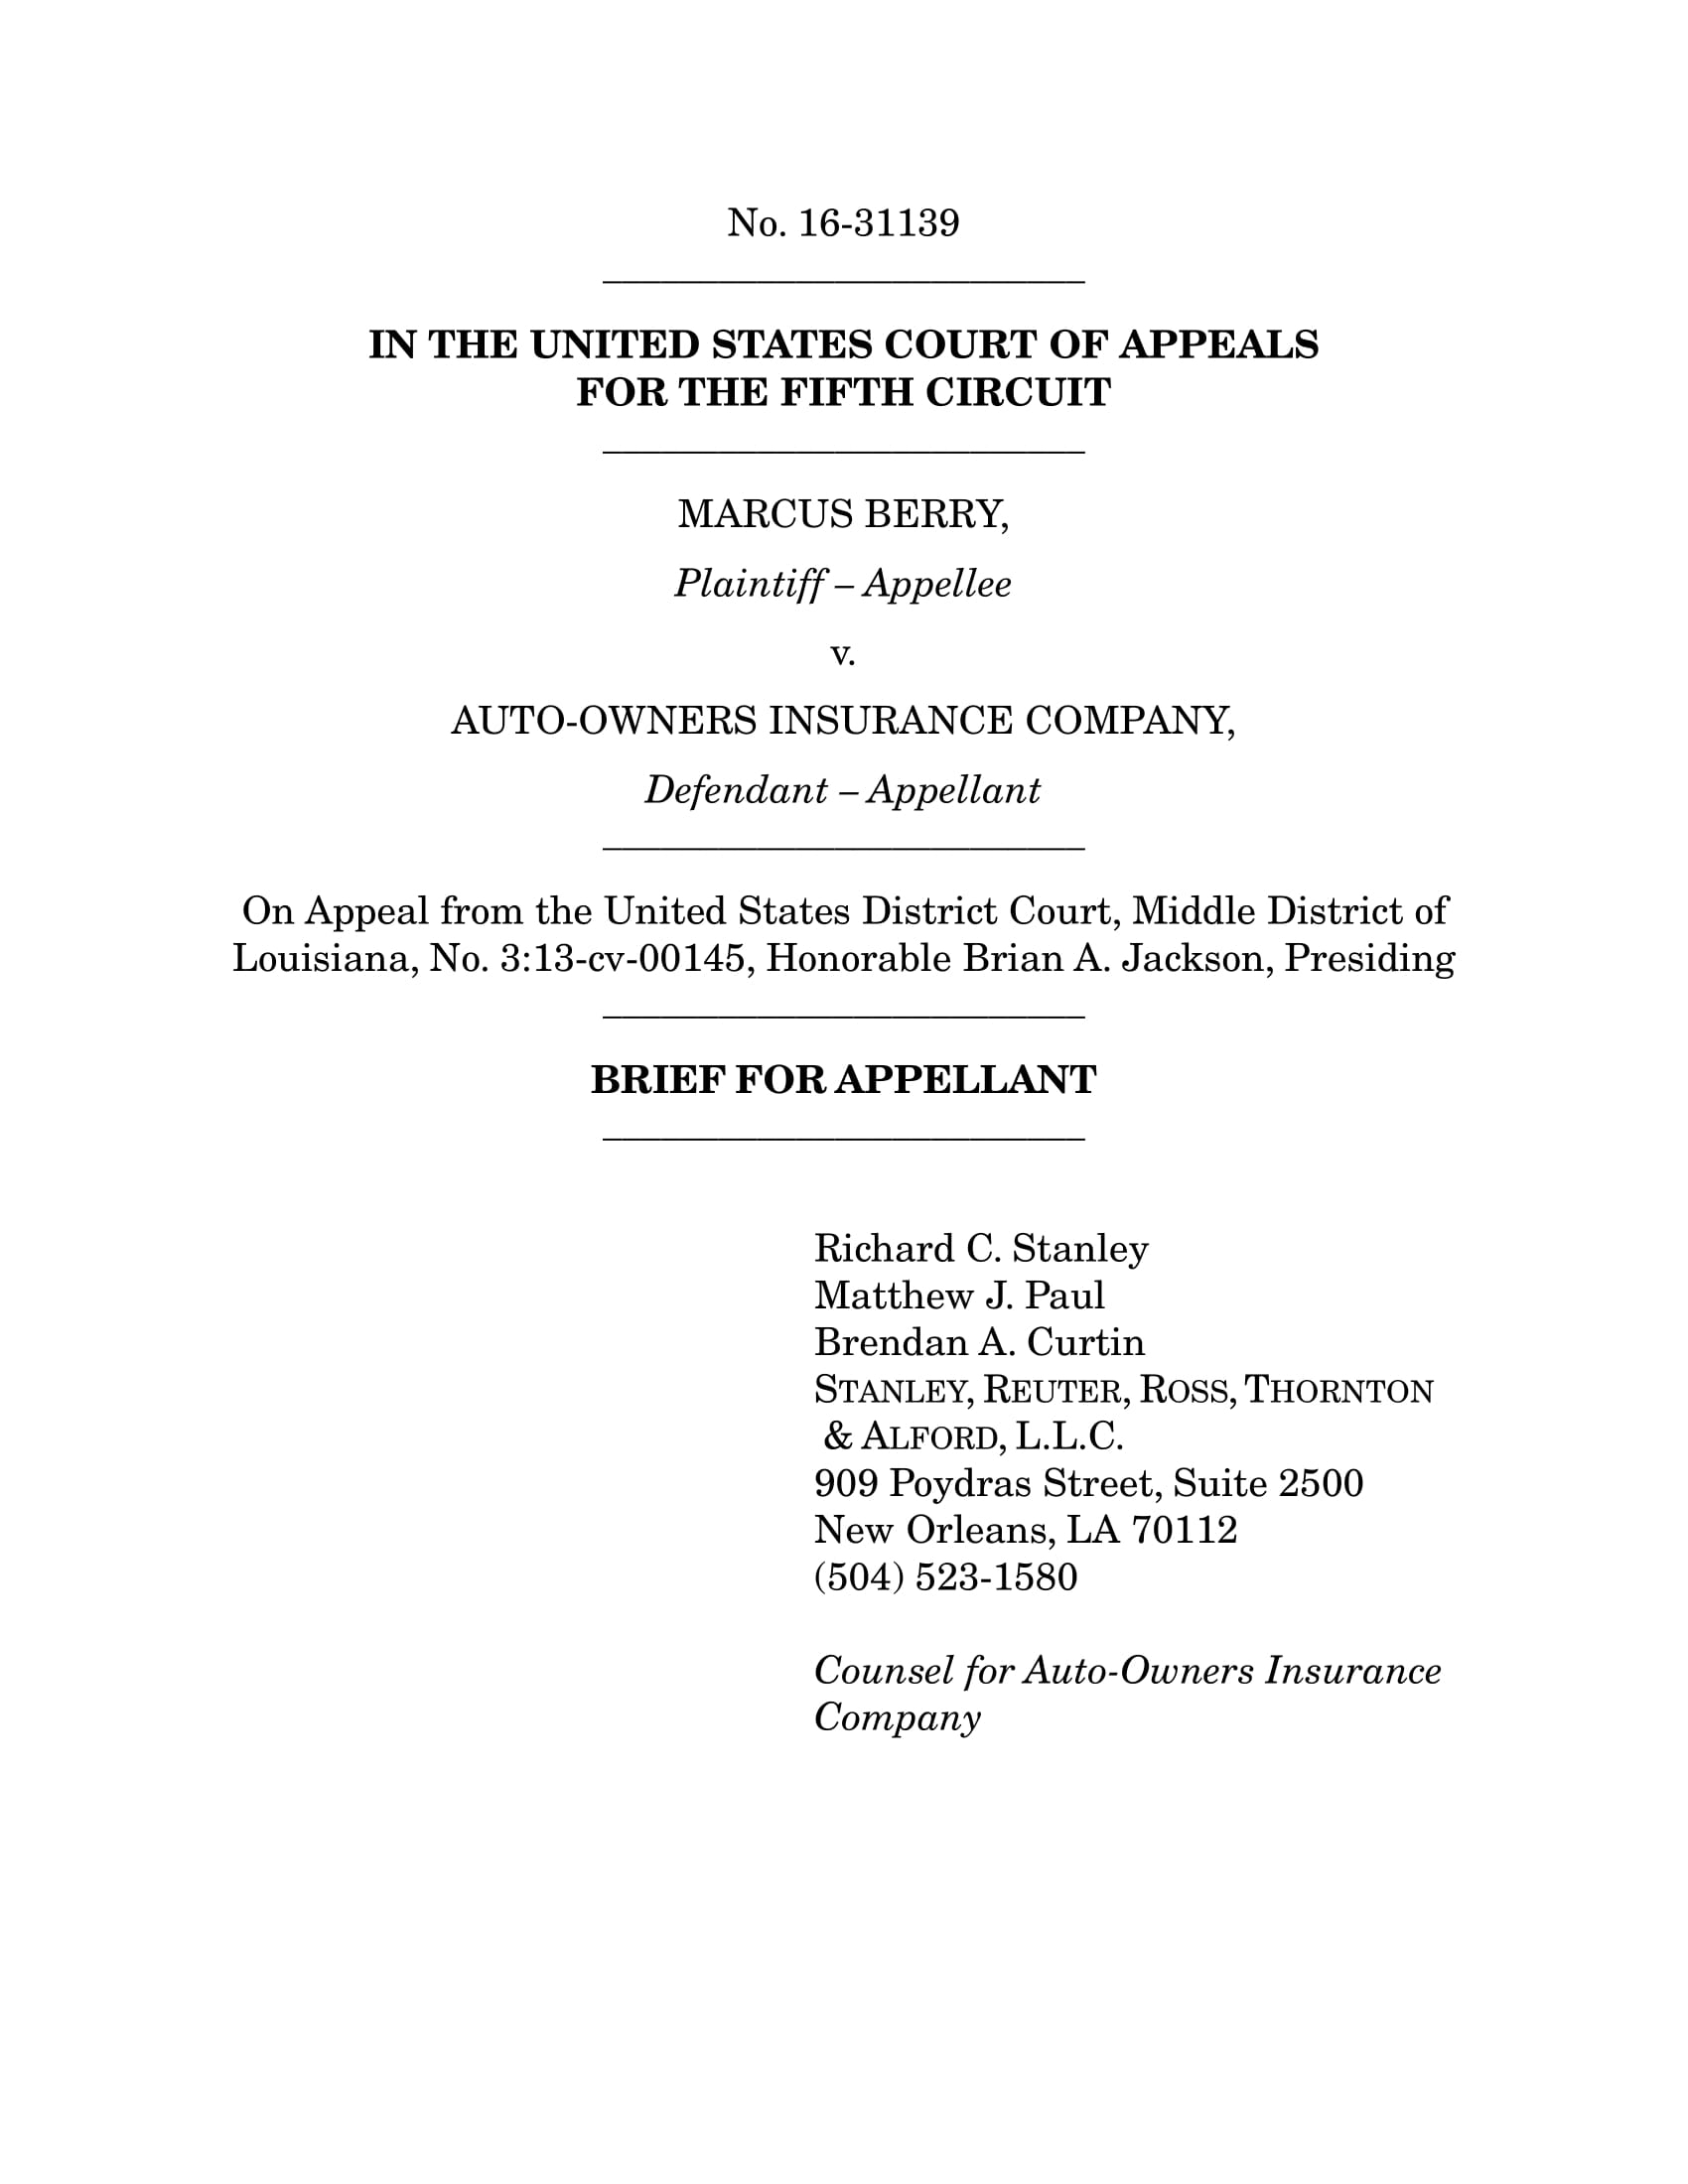 appellate brief outline